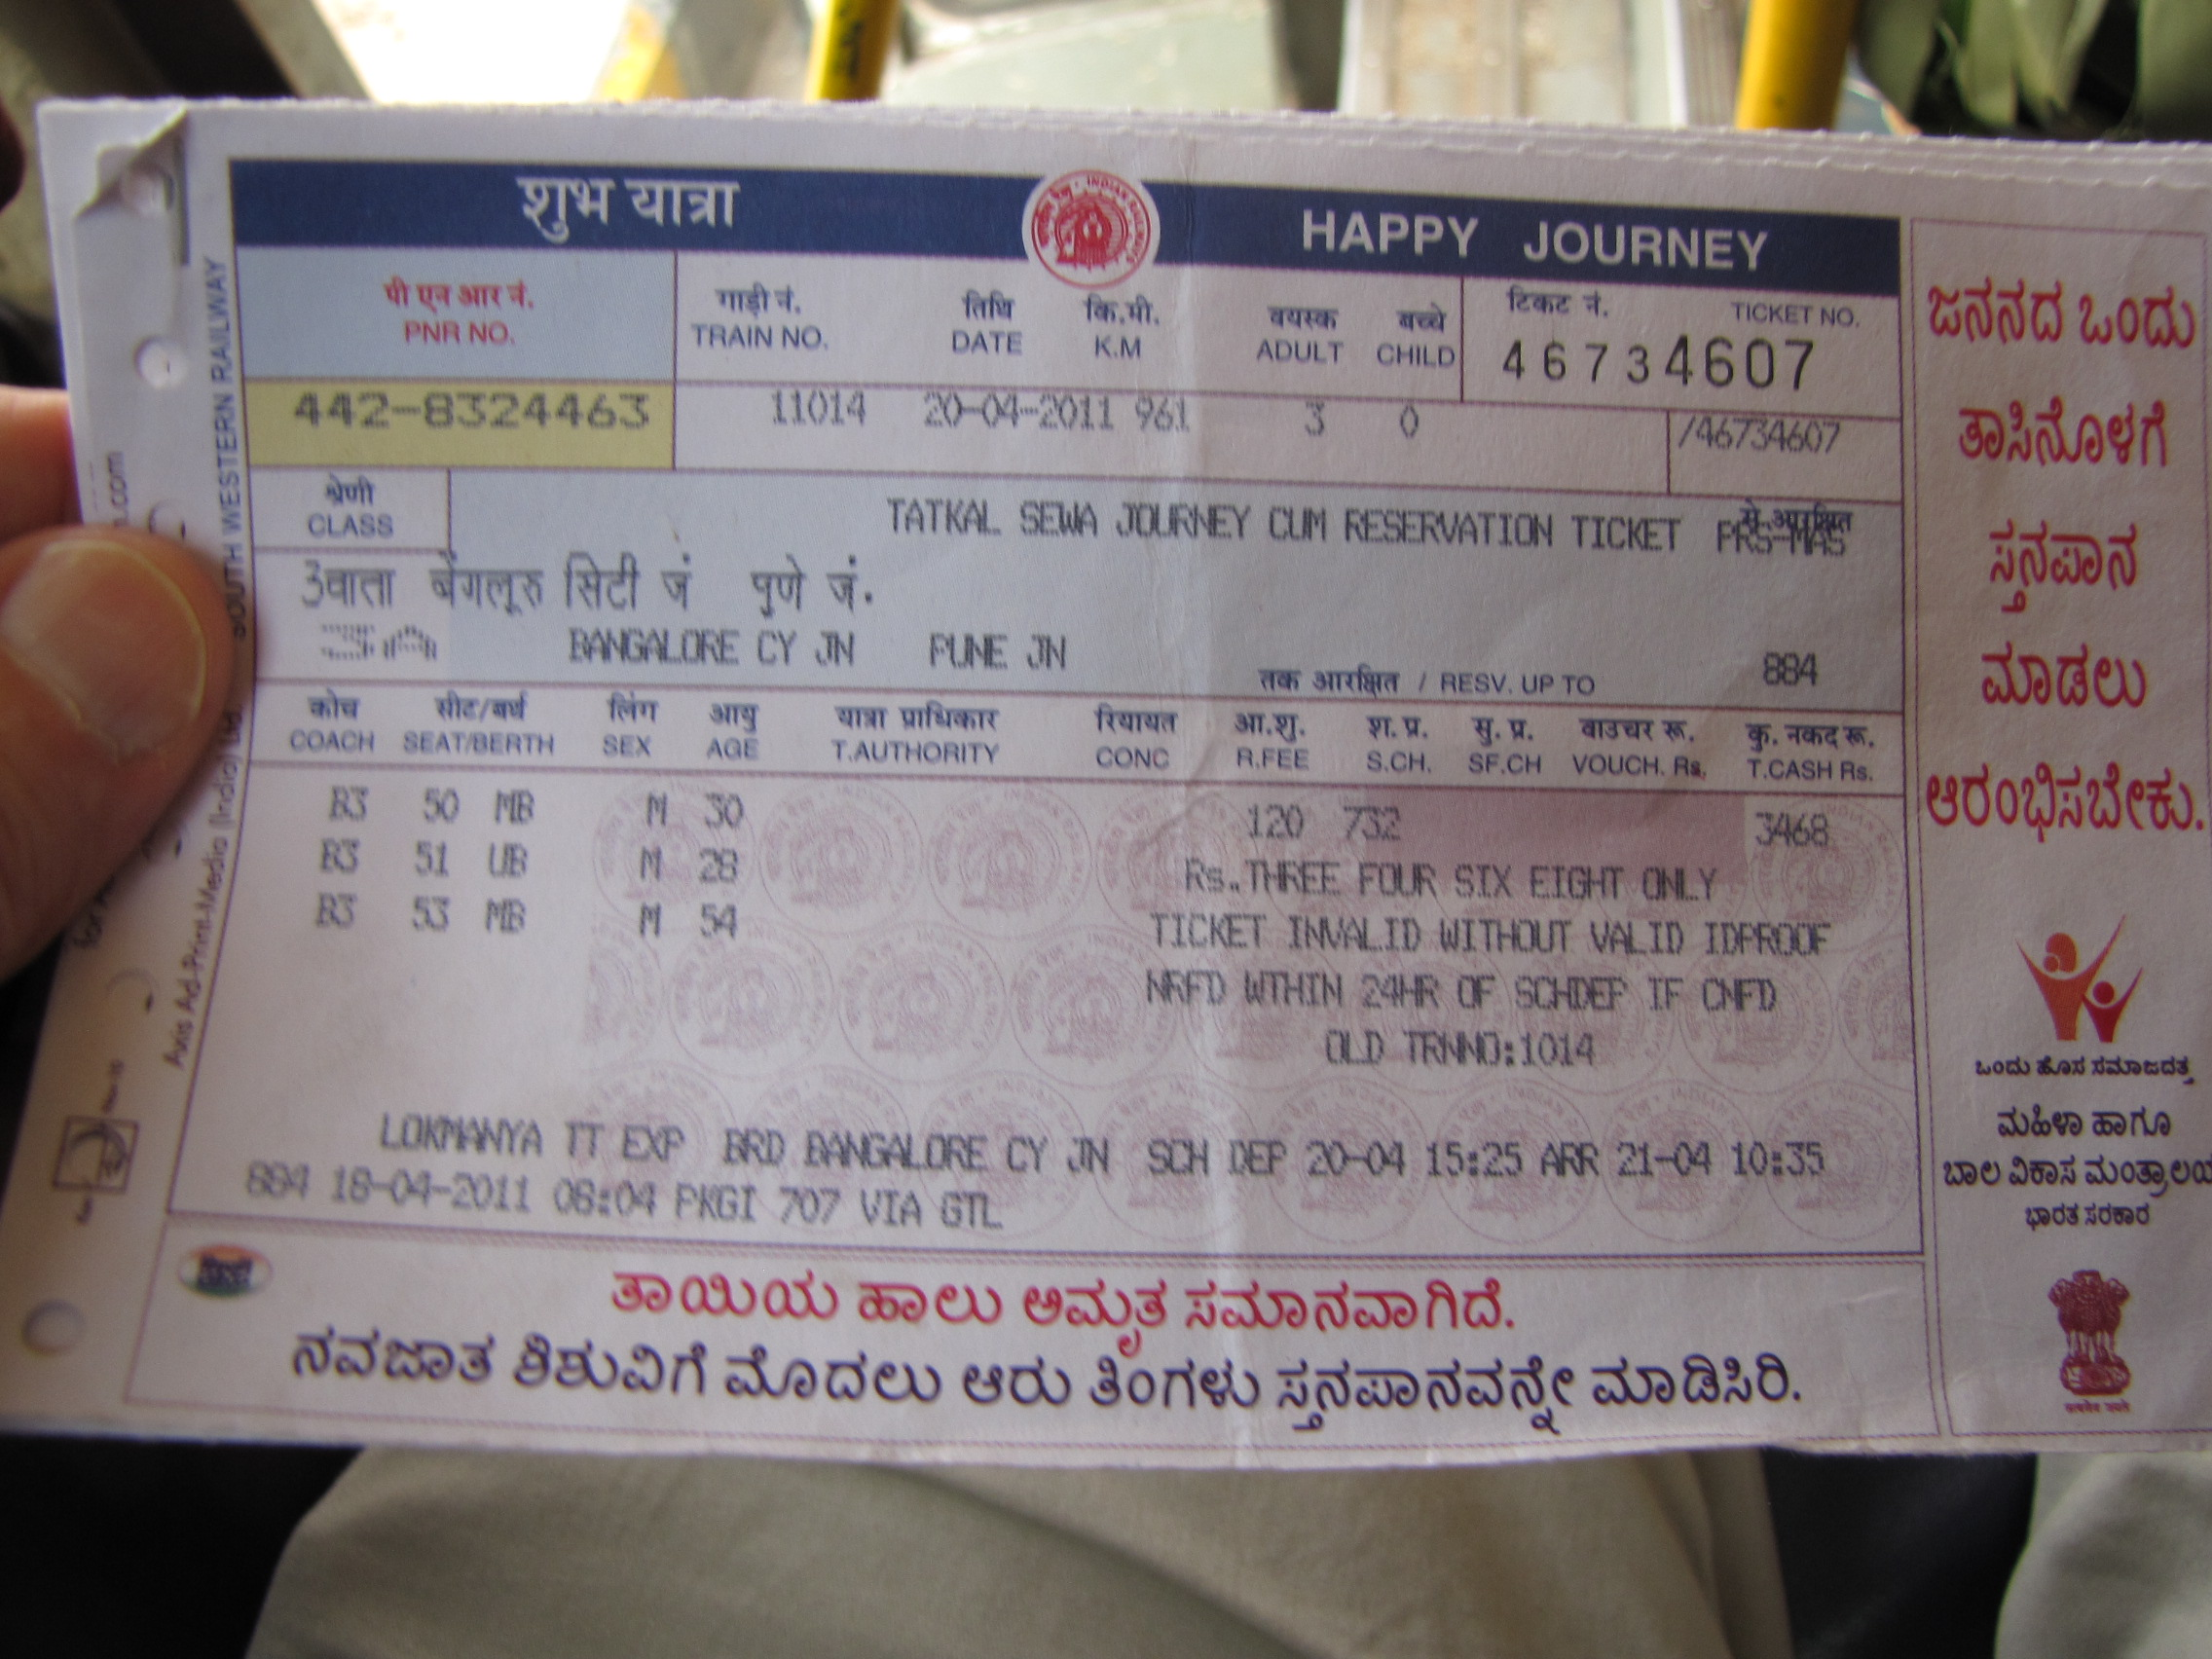 File:Railway ticket from Bangalore City junction to Pune